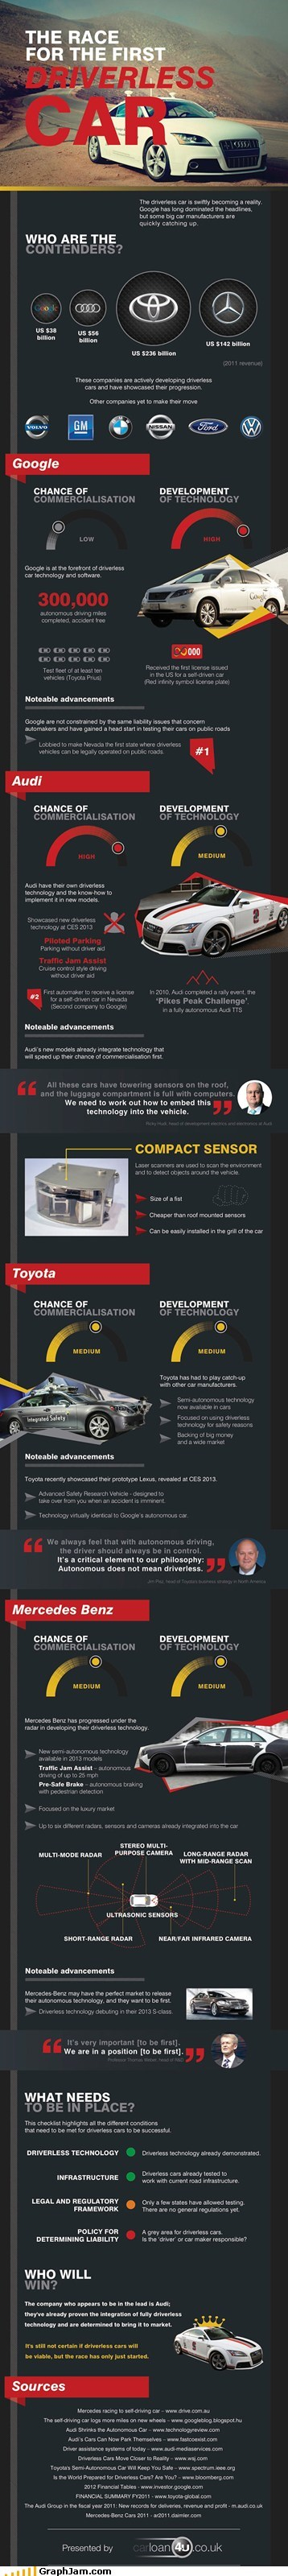 technology cars driverless infographic